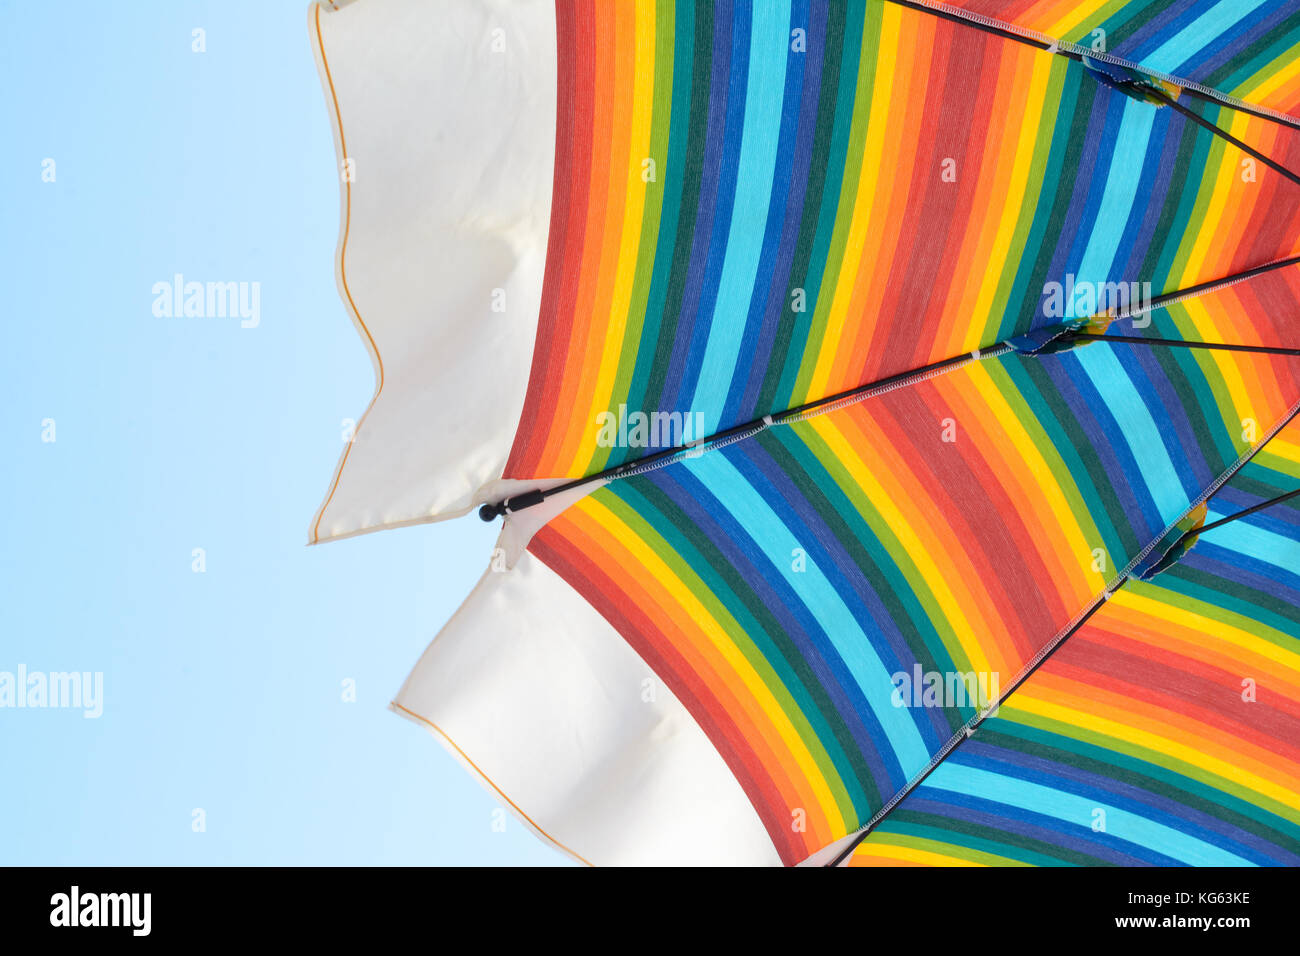 beach umbrellas with rainbow colors, open to protect from the sun Stock Photo